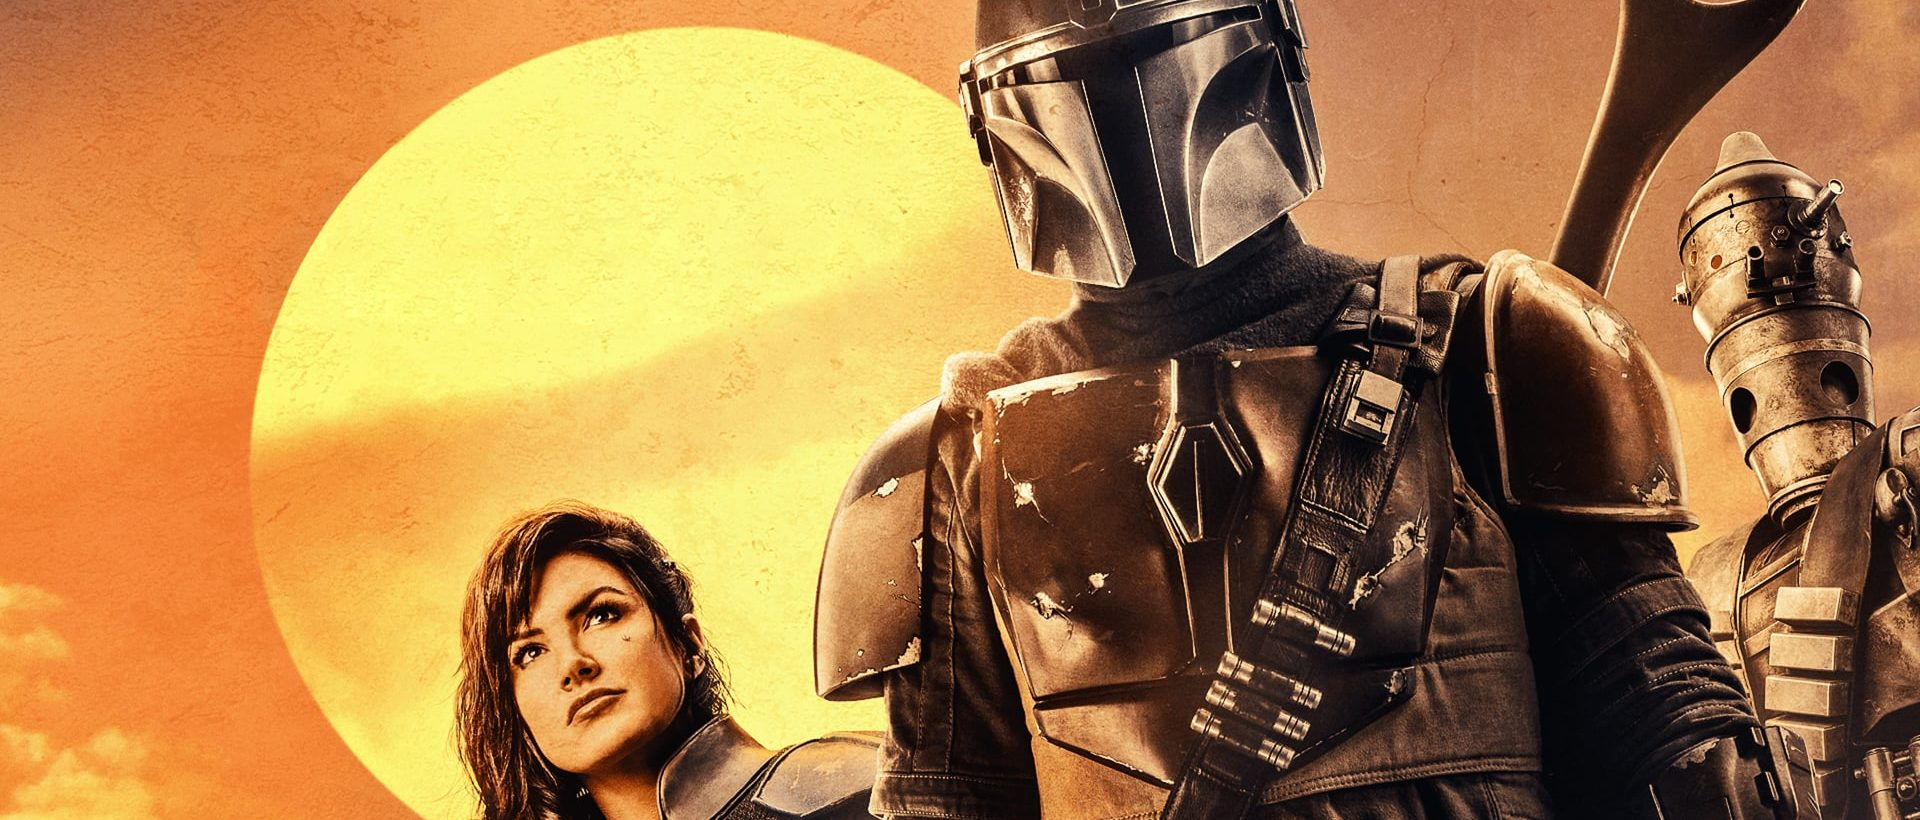 Best TV Shows 2019 The Mandalorian